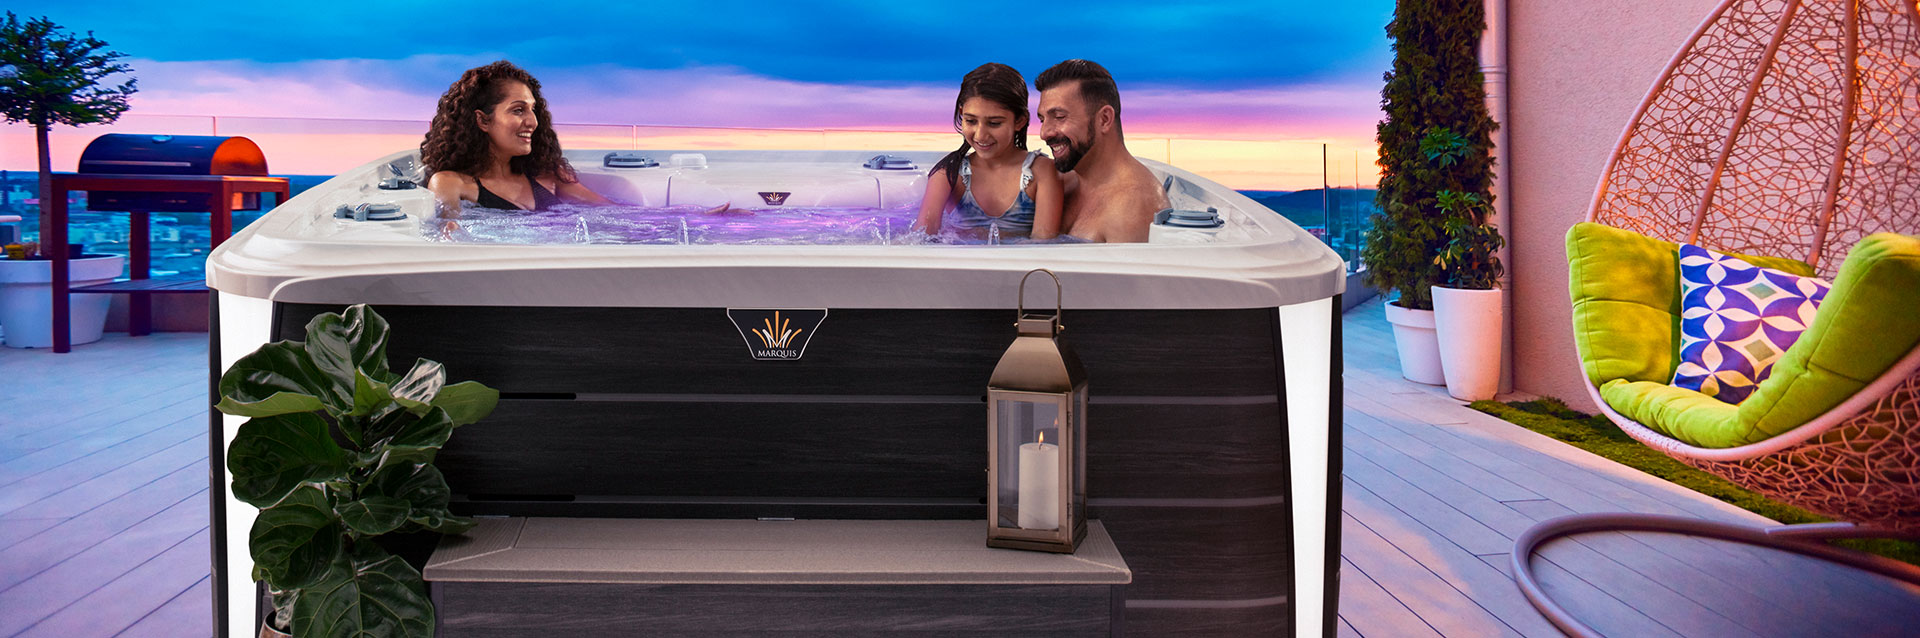 The Crown Epic Hot Tub